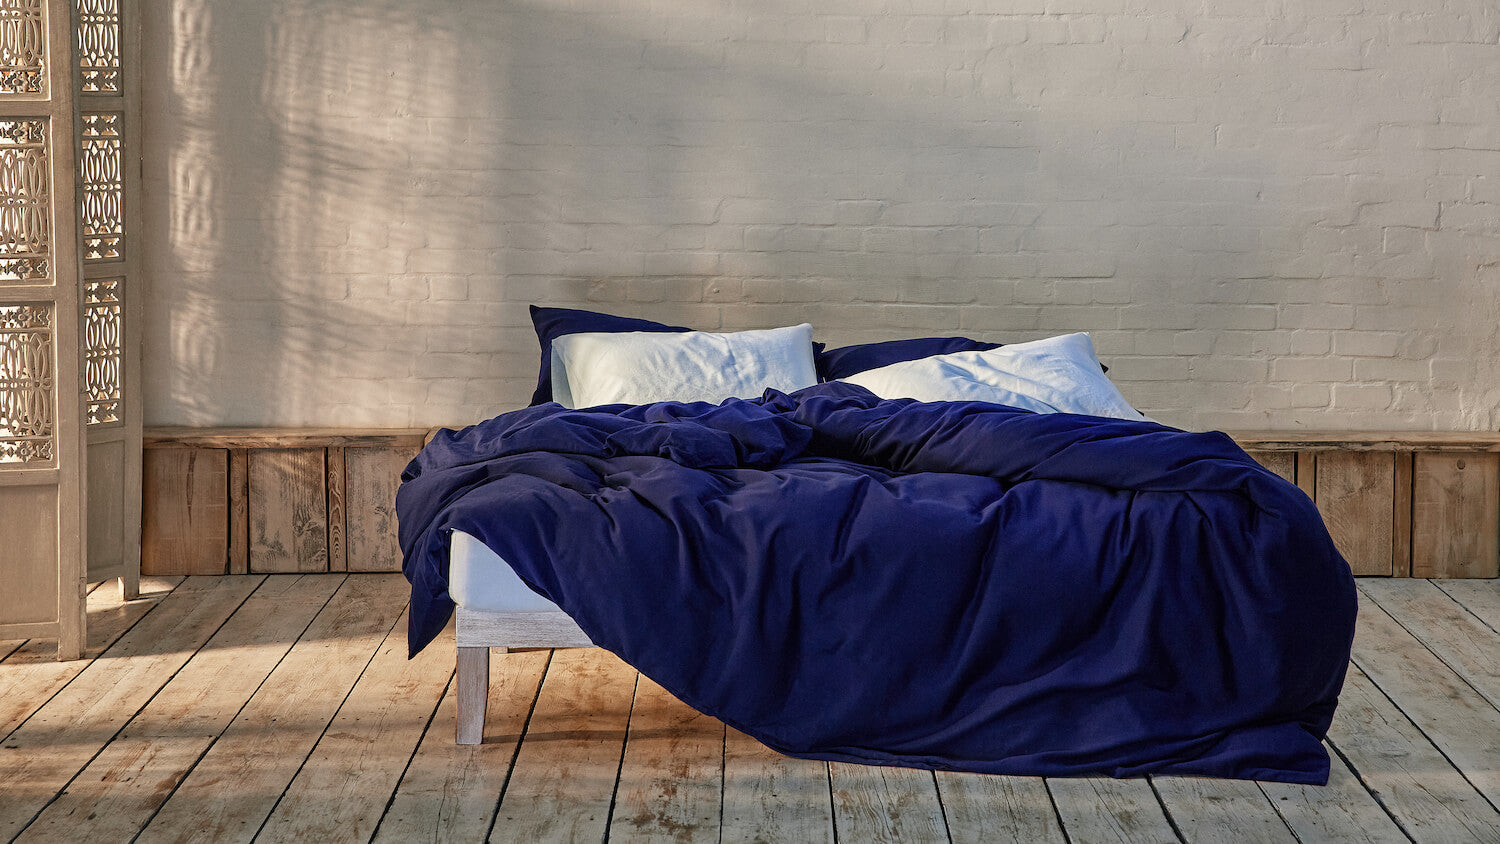 navy blue and baby blue bedding mix and match on bed in a modern room